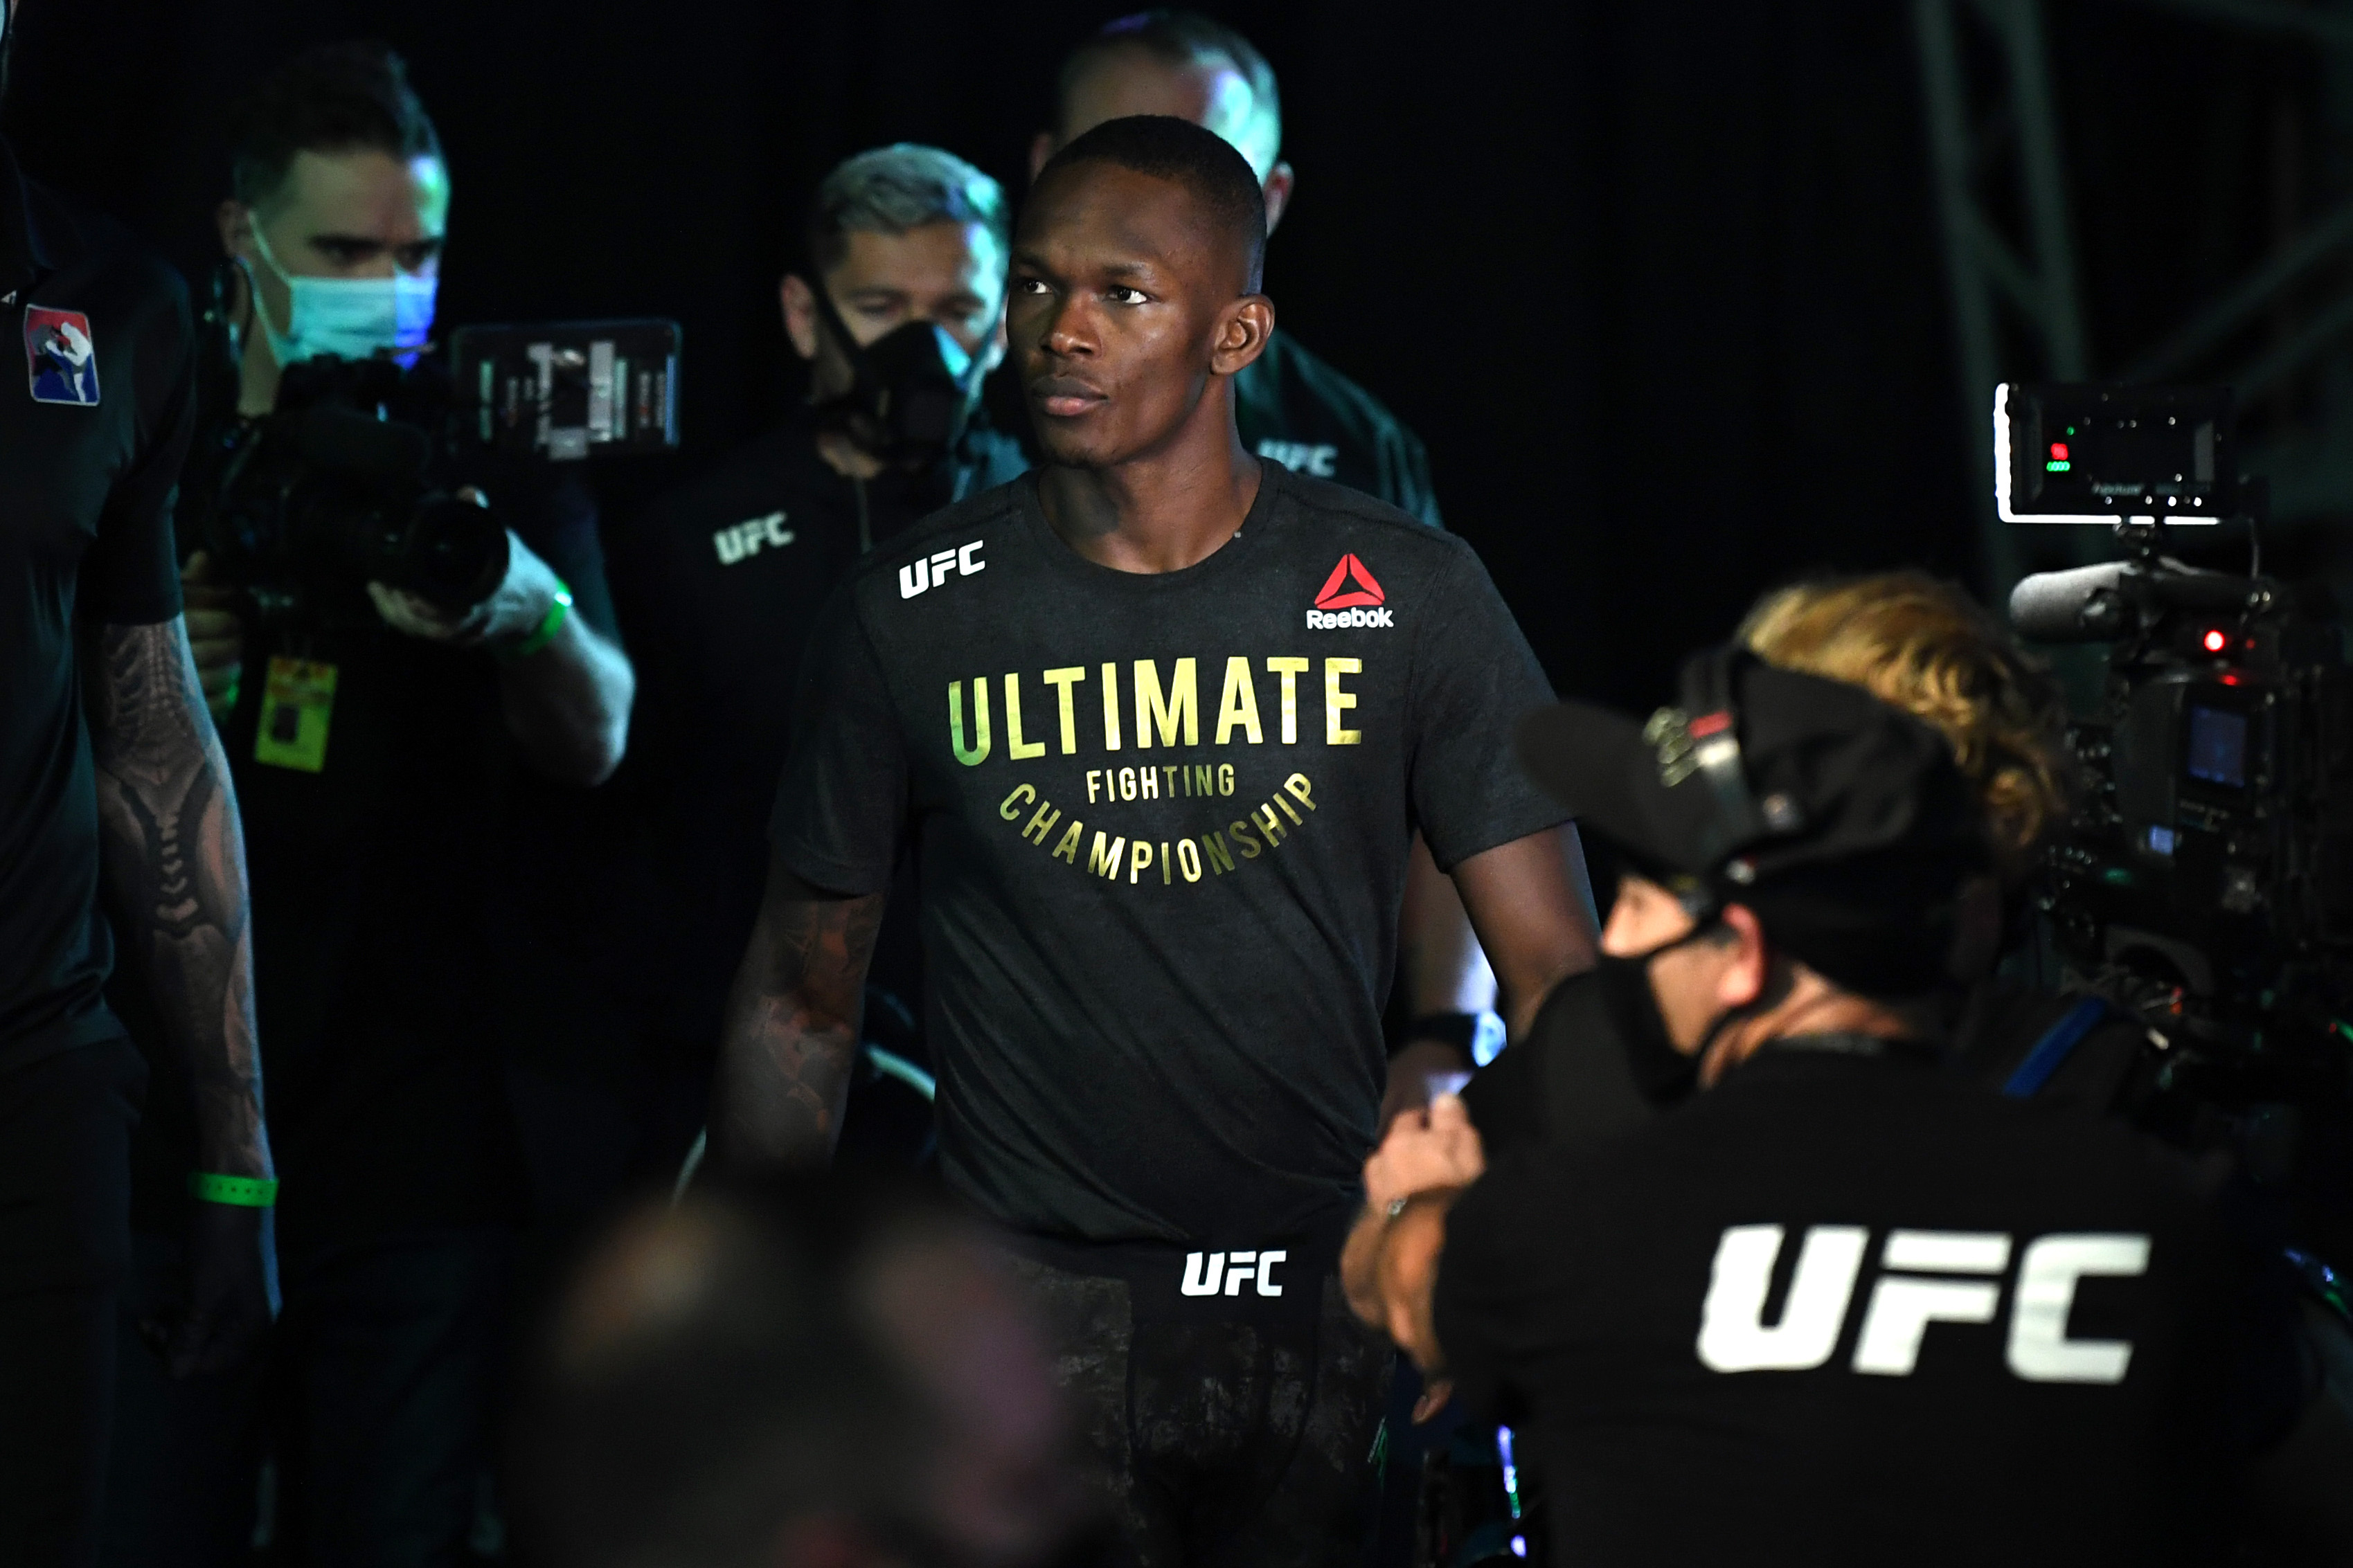 Israel Adesanya walks toward the Octagon